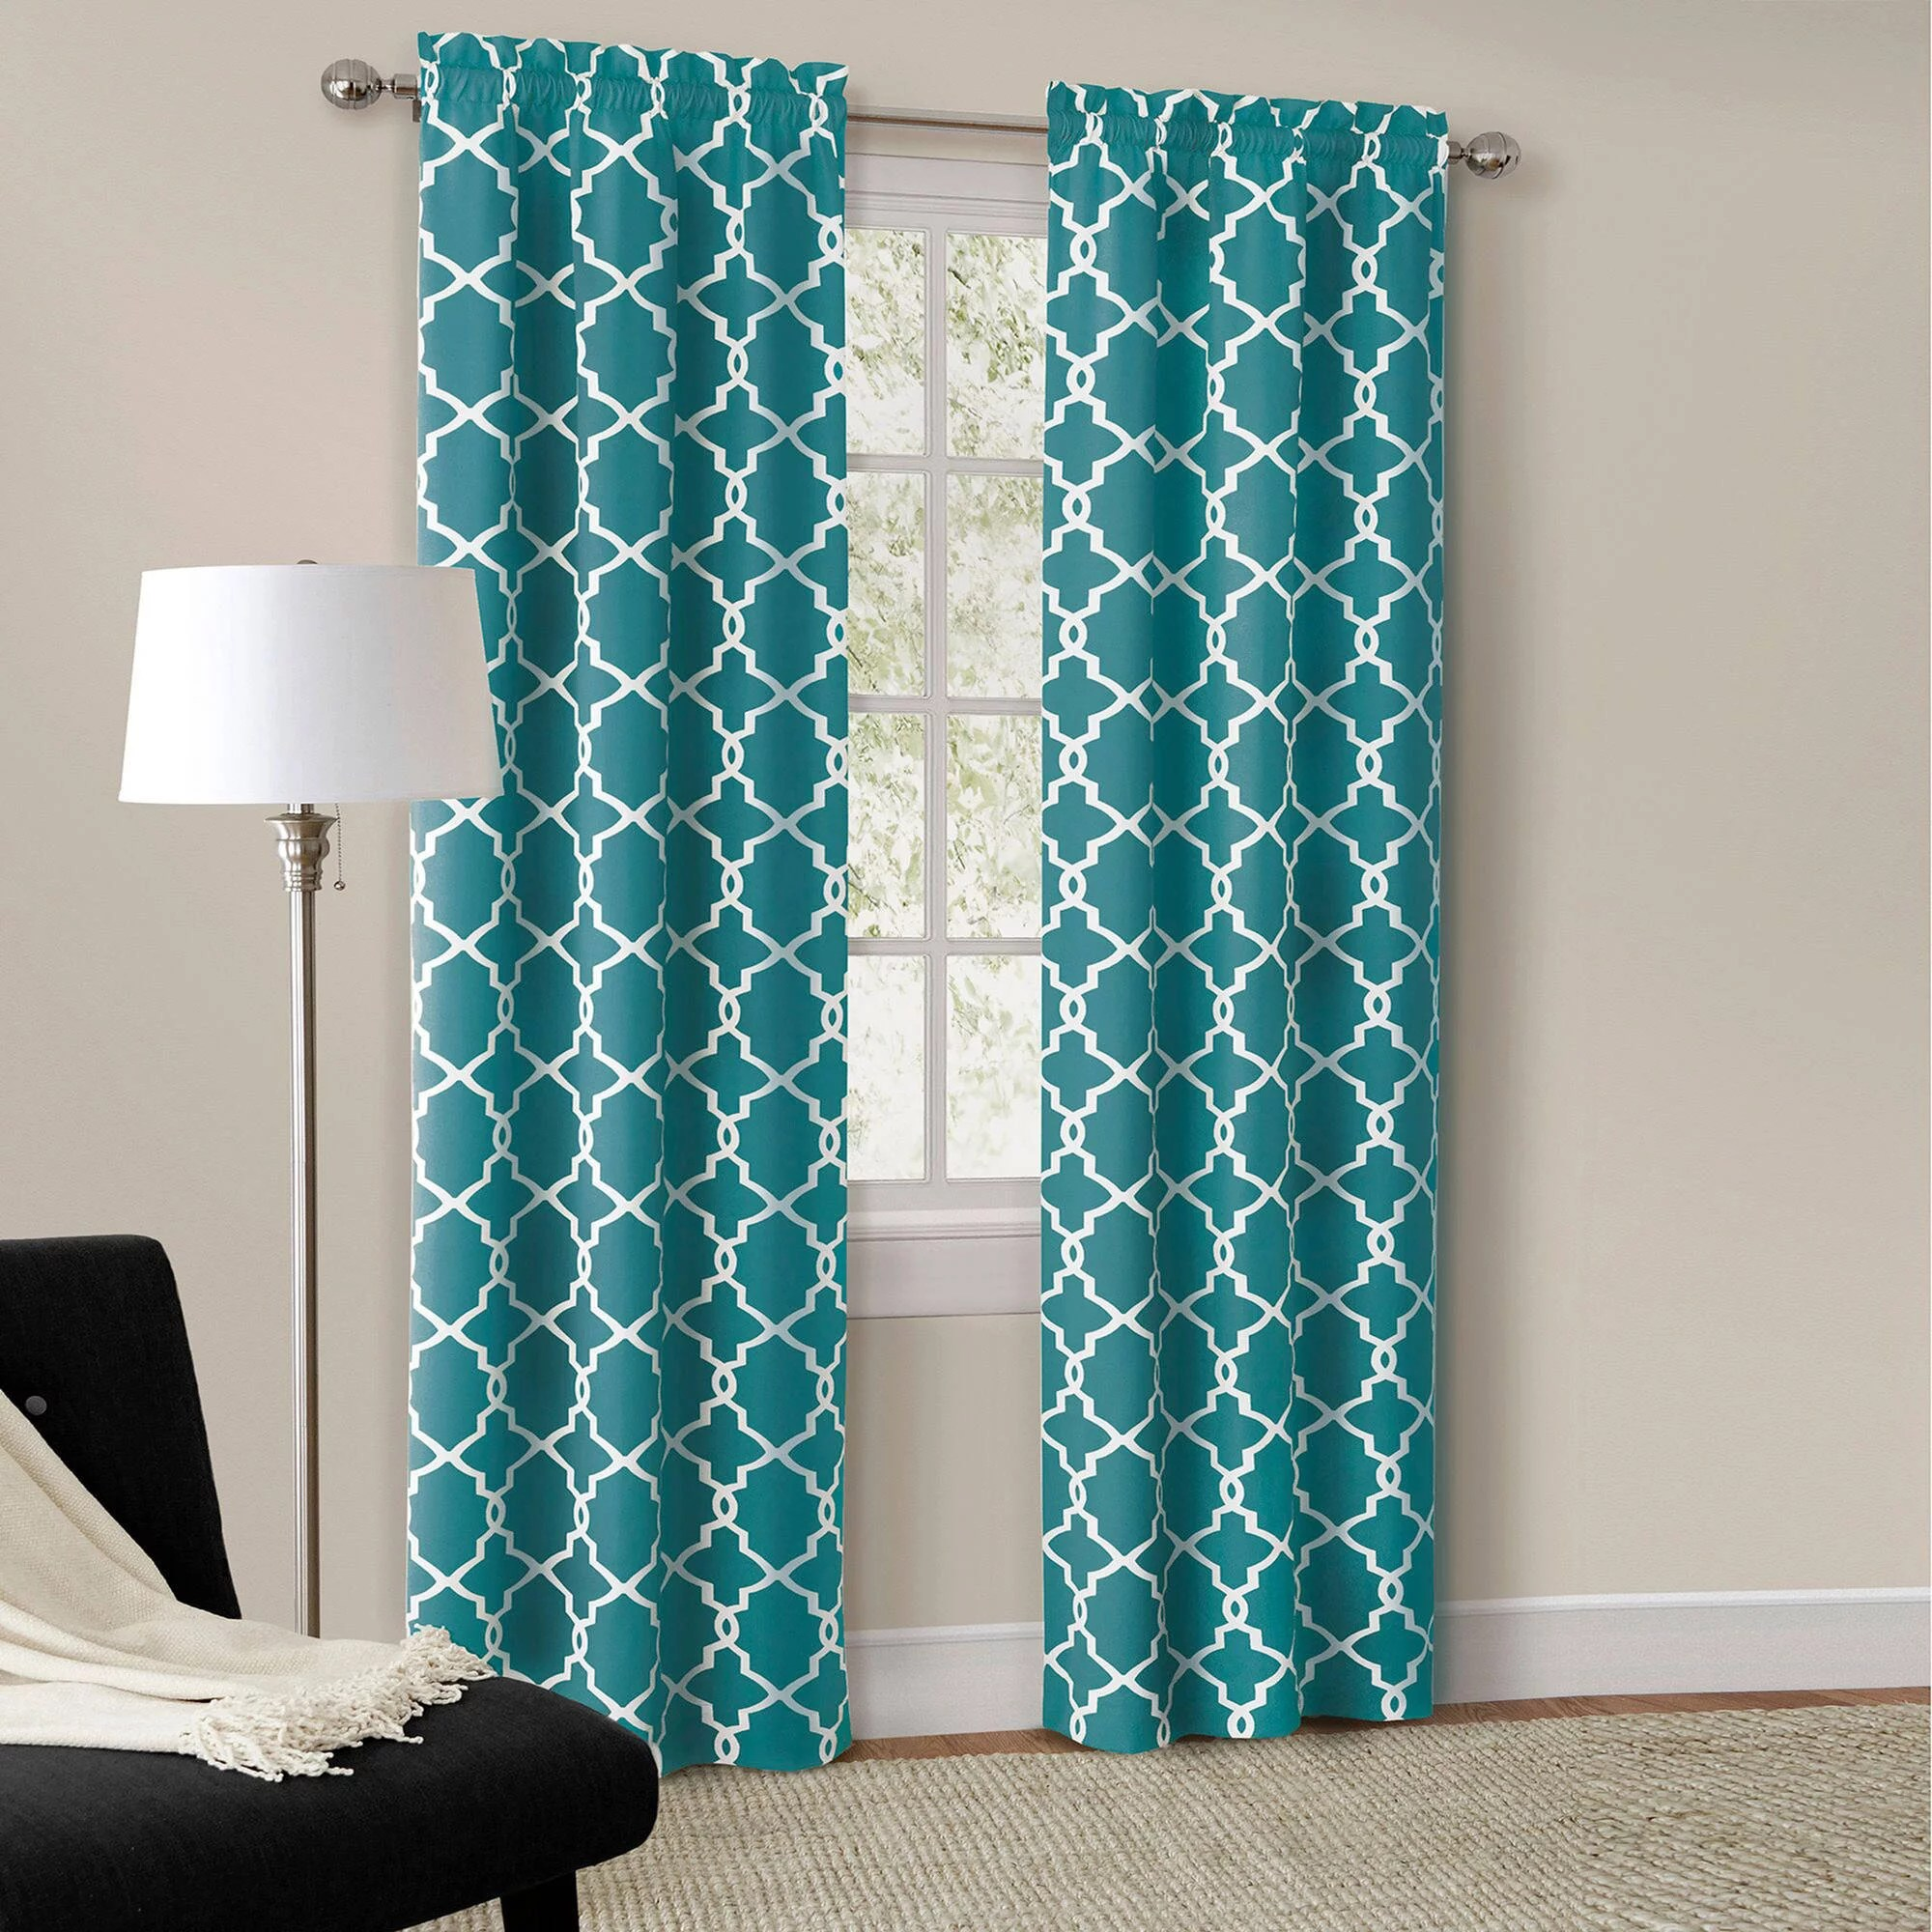 Bathroom curtains from walmart - Bathroom Window Curtains At Walmart Drapes Drapery Walmart Com Walmart Com